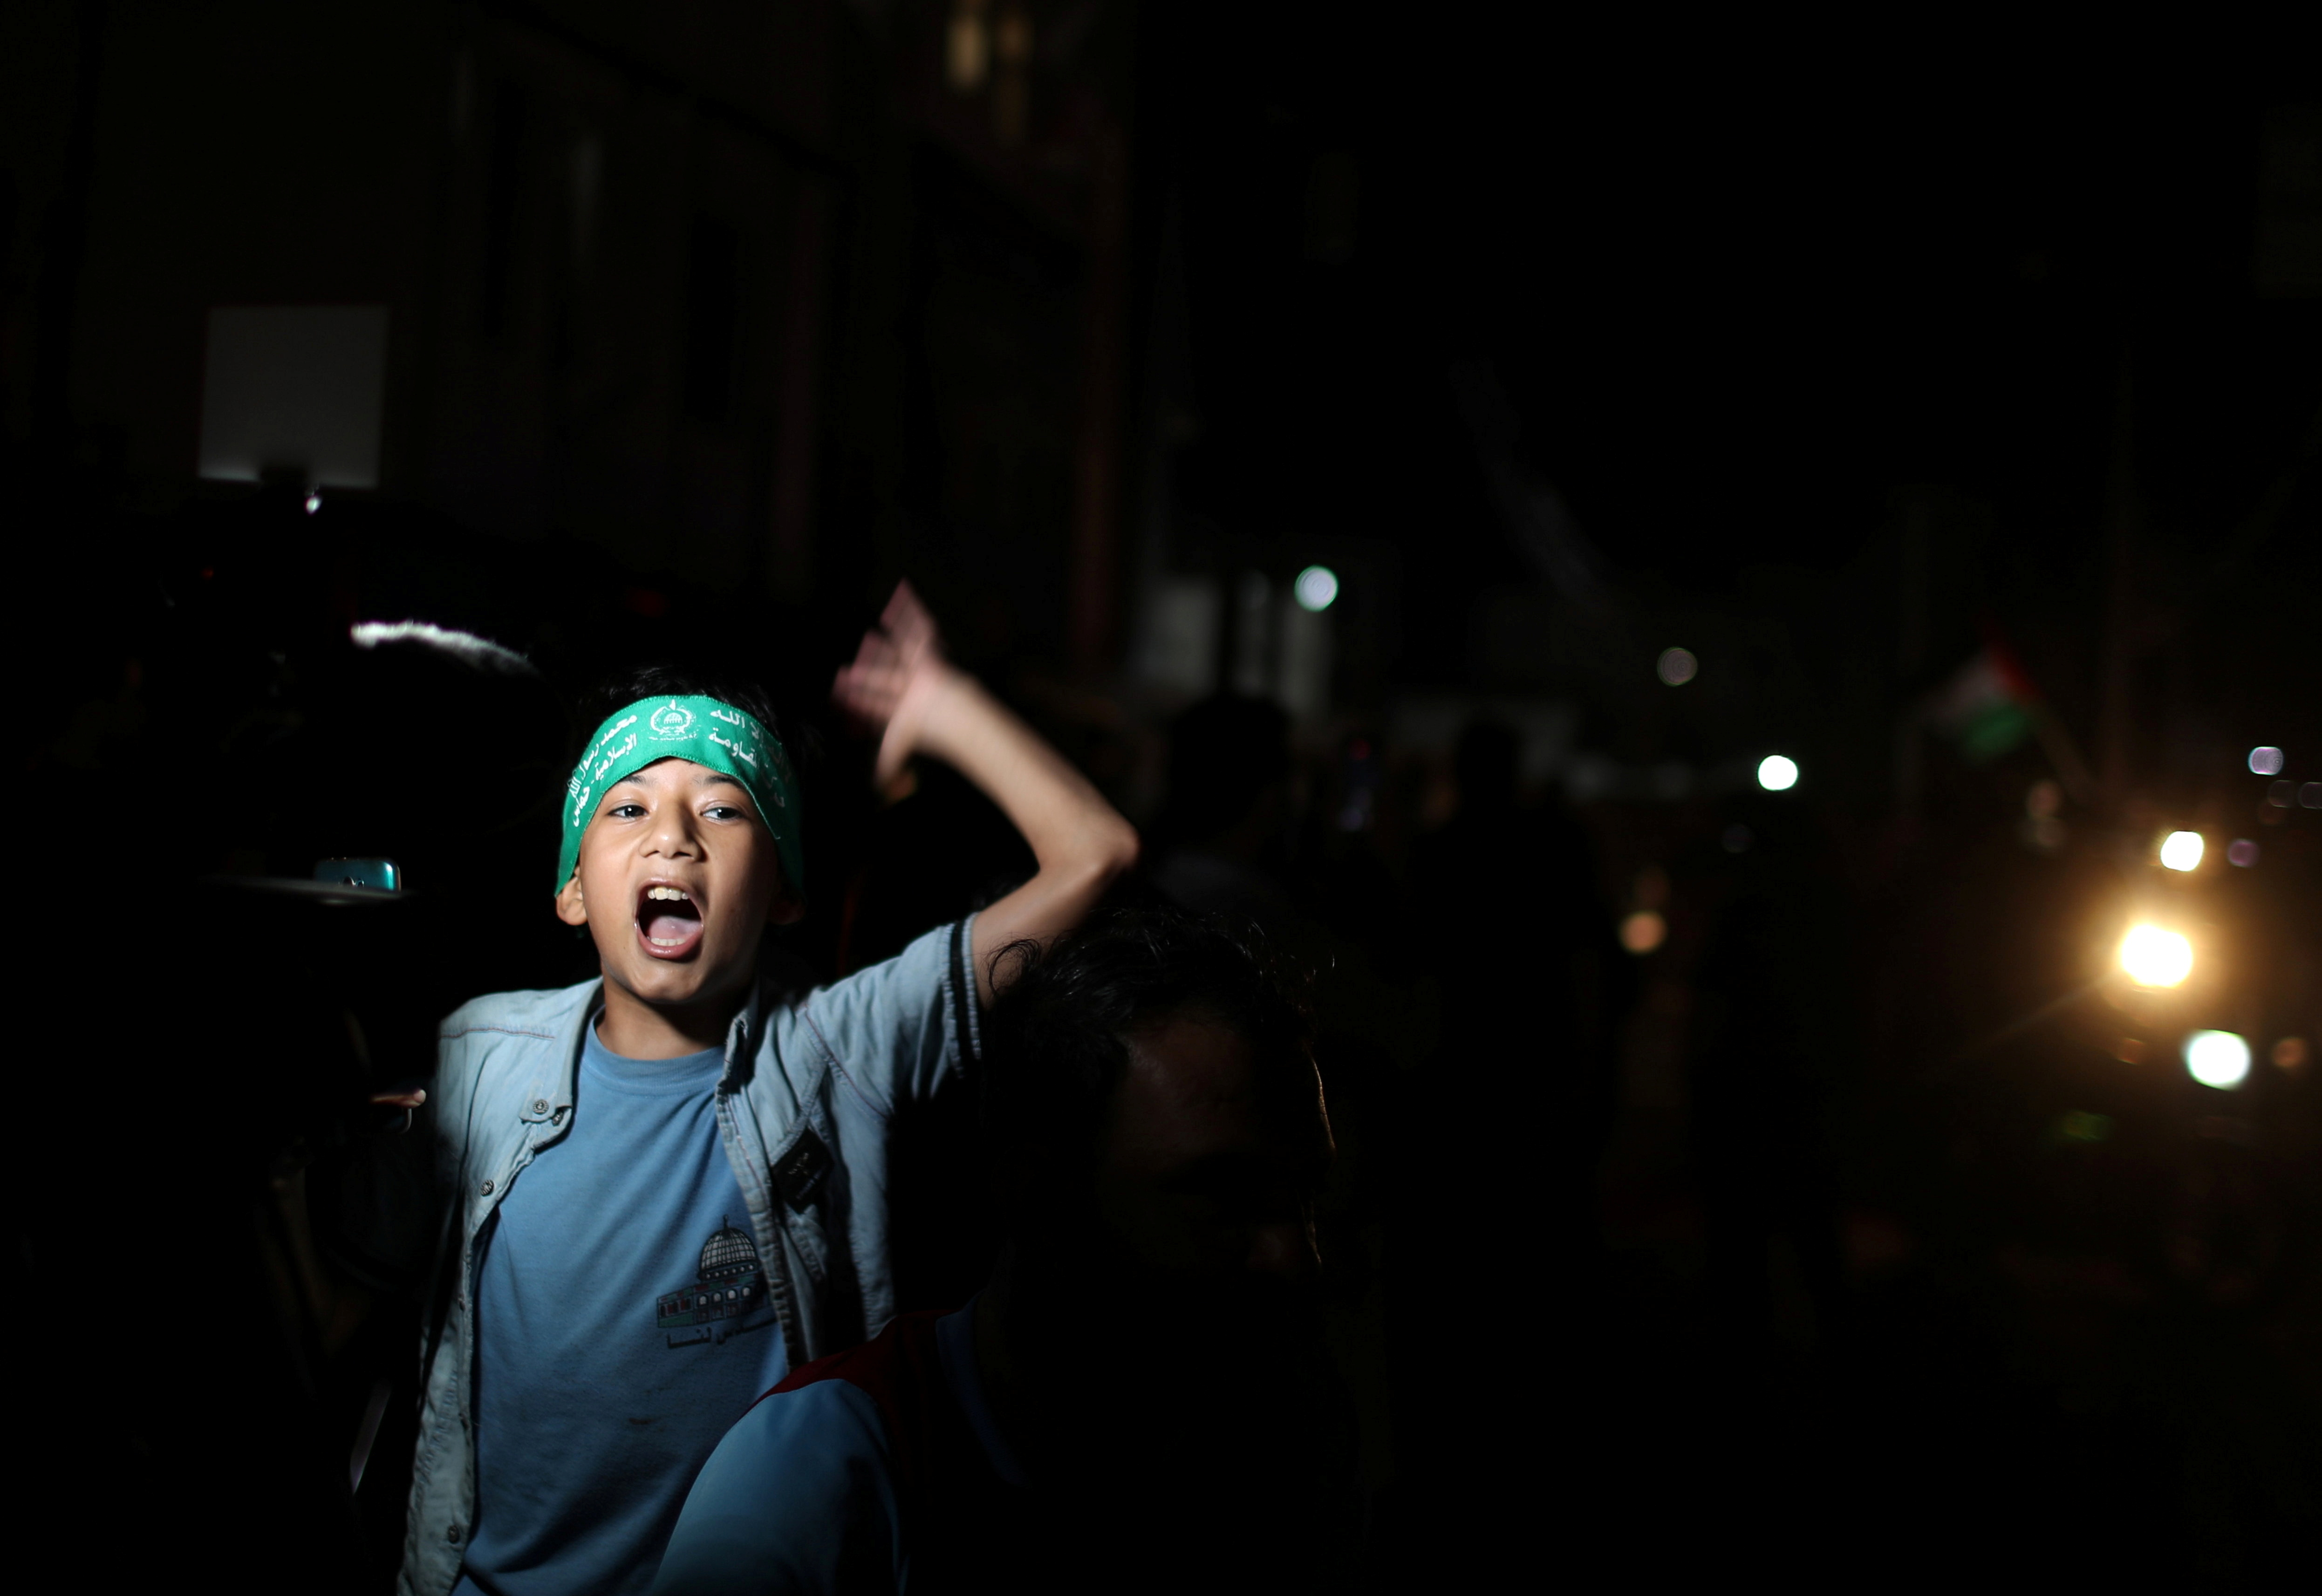 A boy gestures as Palestinians celebrate in the streets following a ceasefire, in Gaza City May 21, 2021. REUTERS/Mohammed Salem